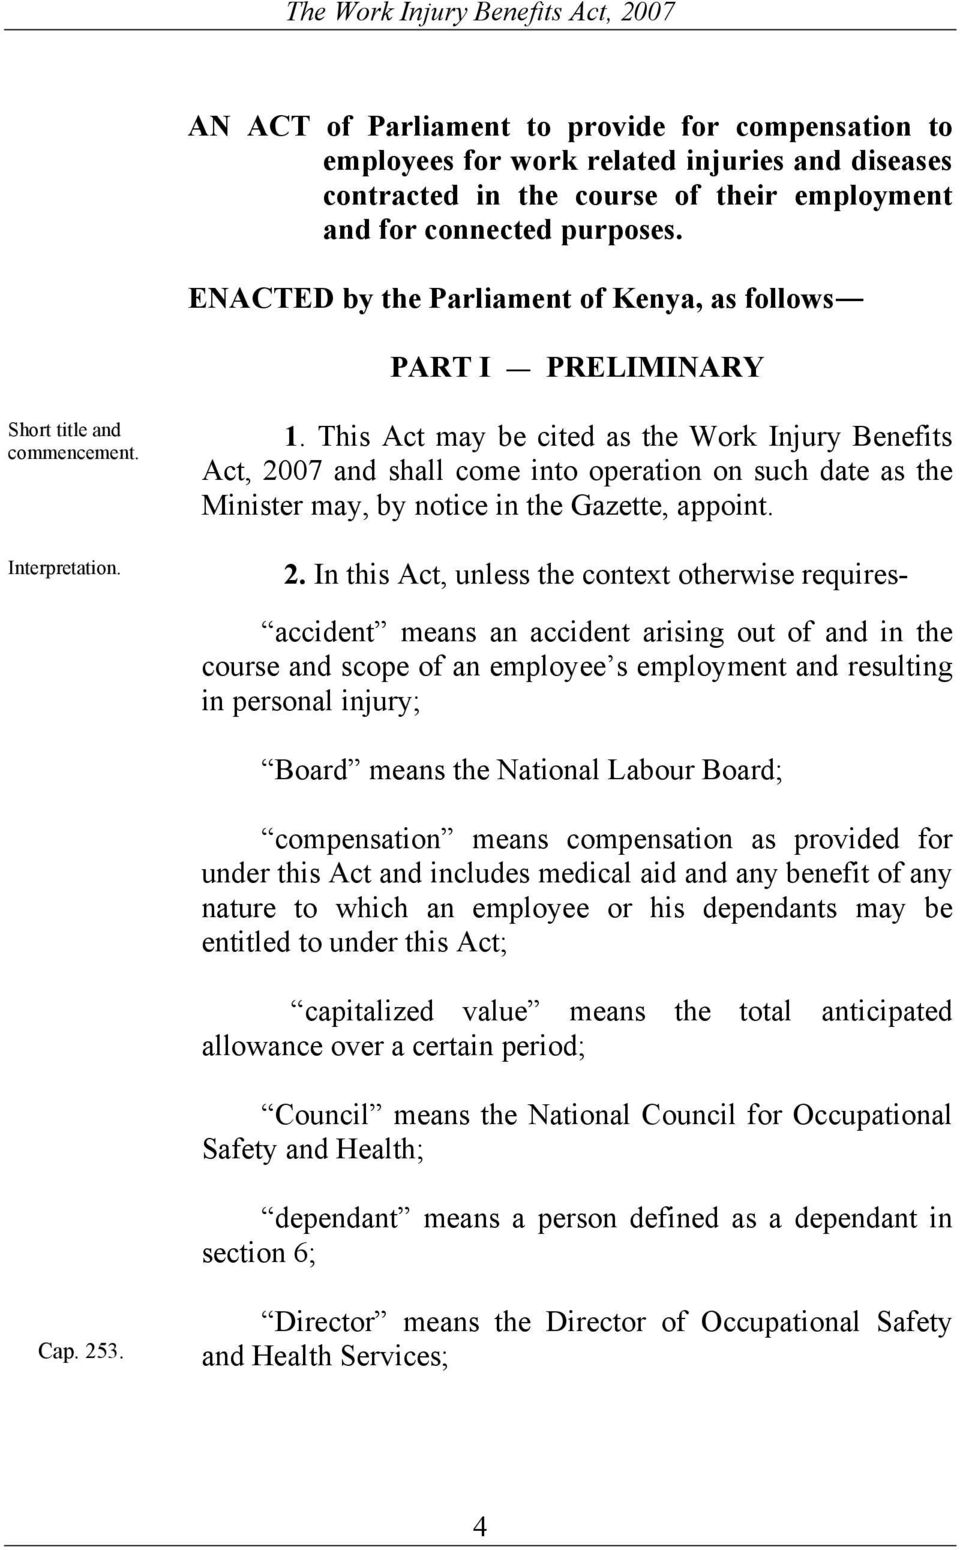 This Act may be cited as the Work Injury Benefits Act, 20